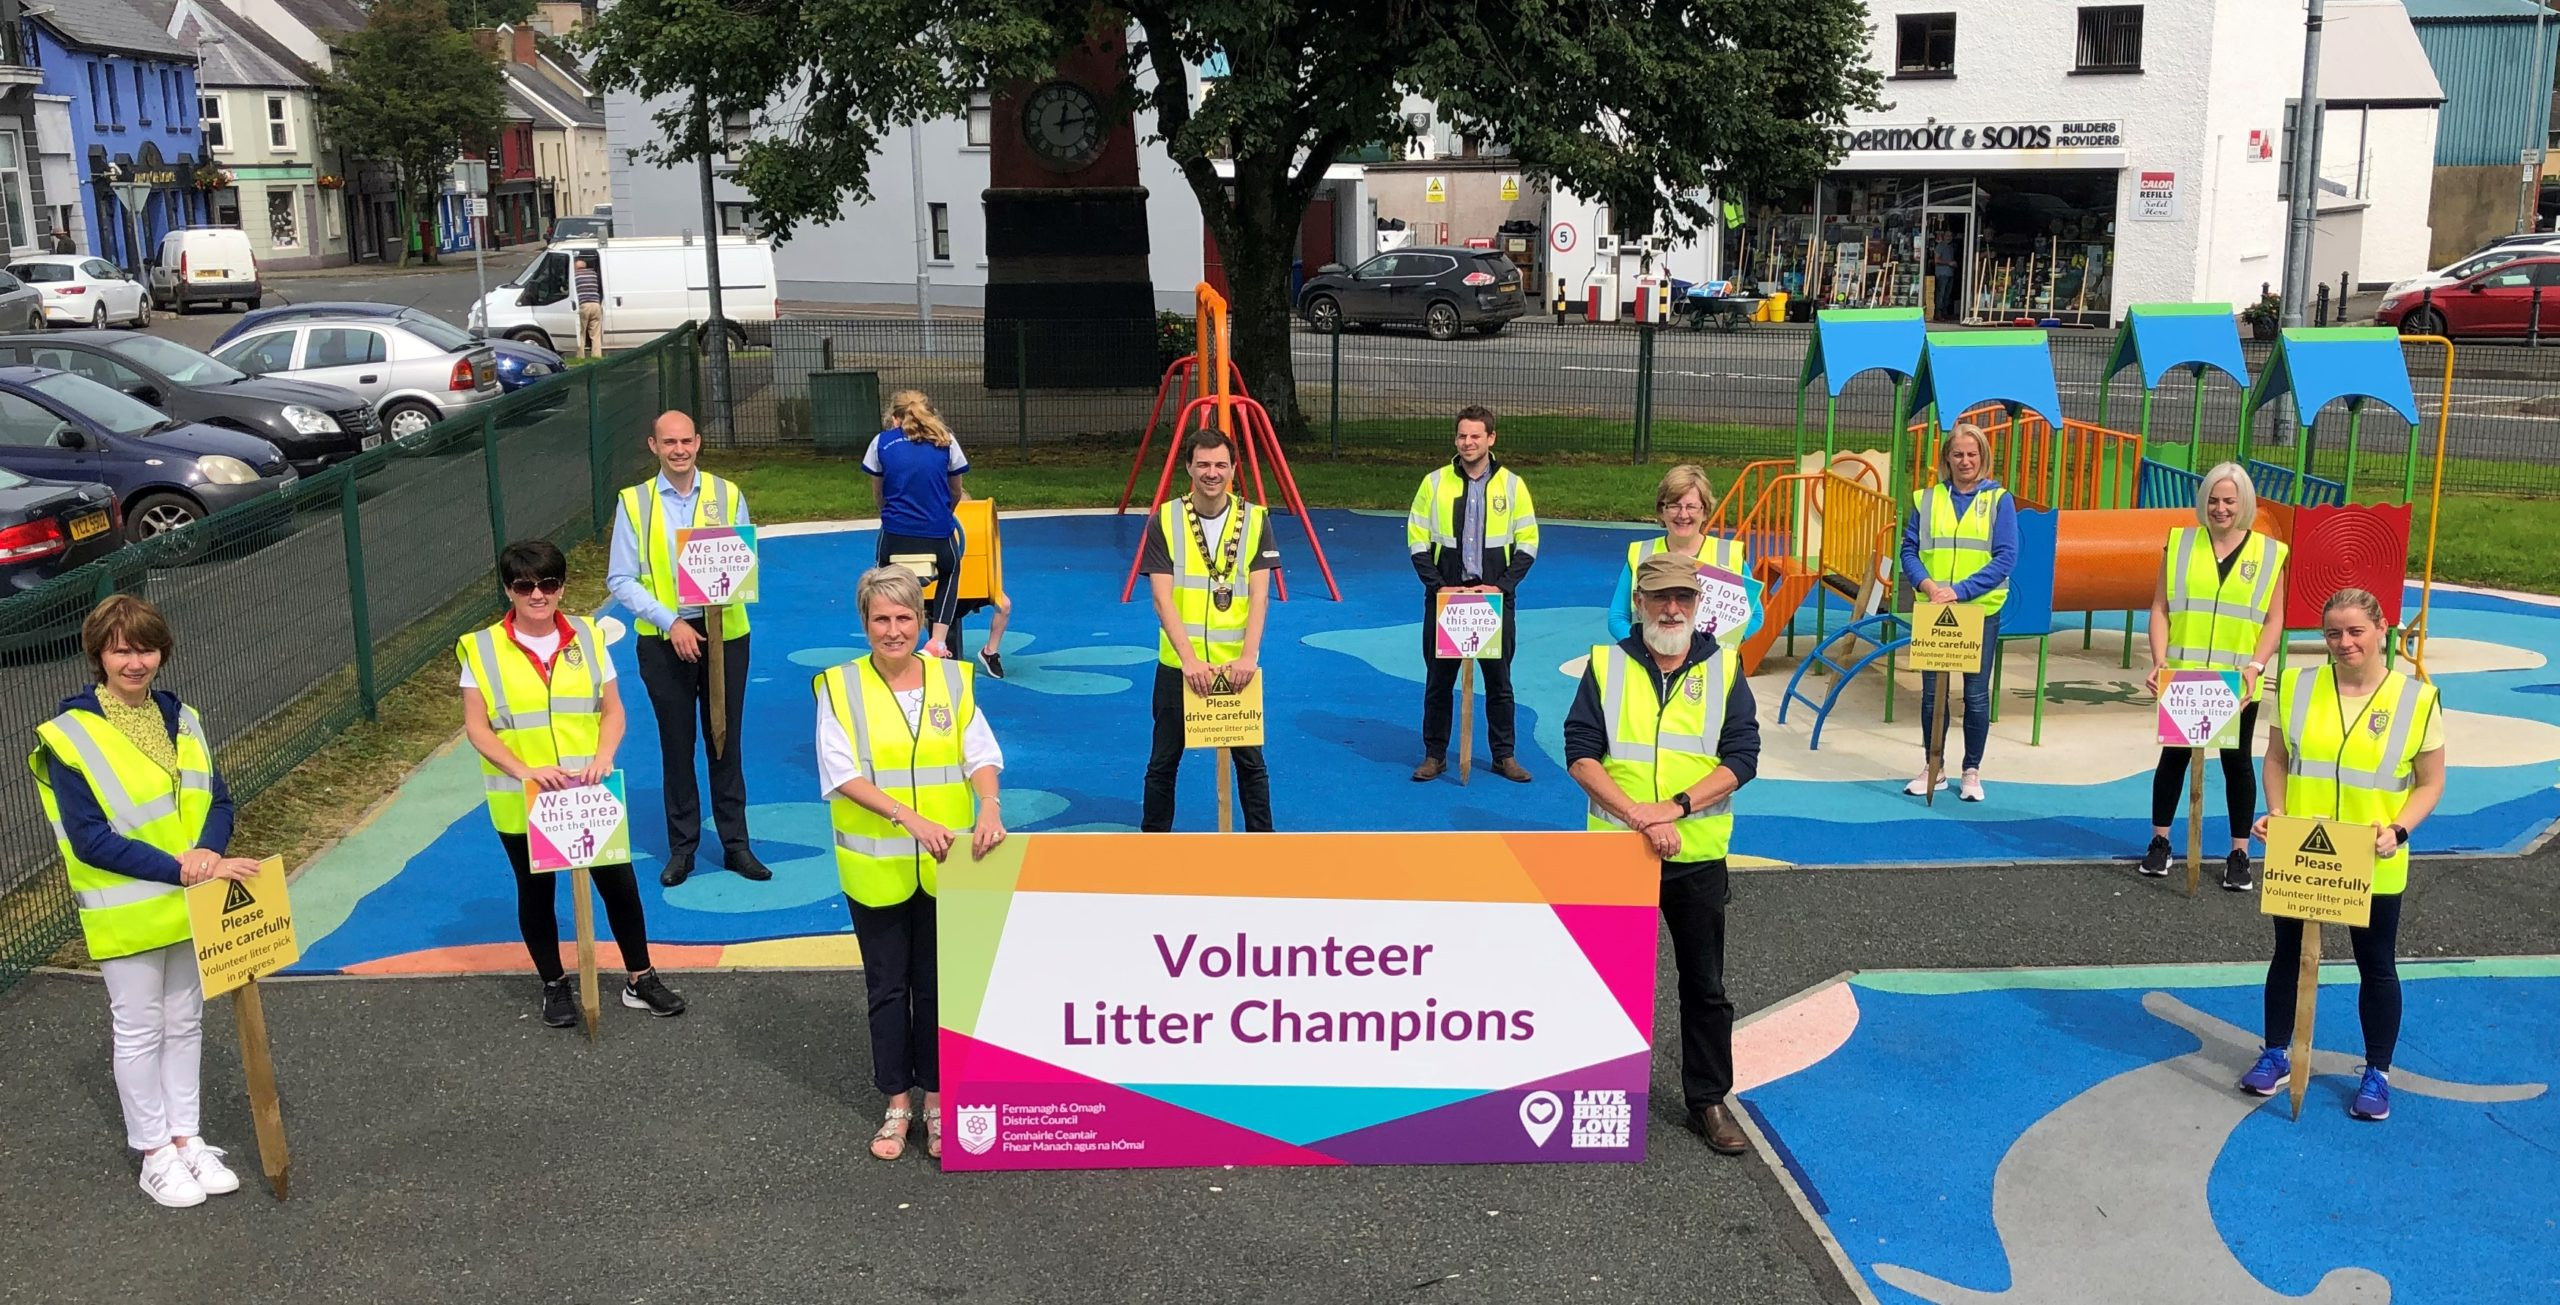 Volunteer Litter Champions